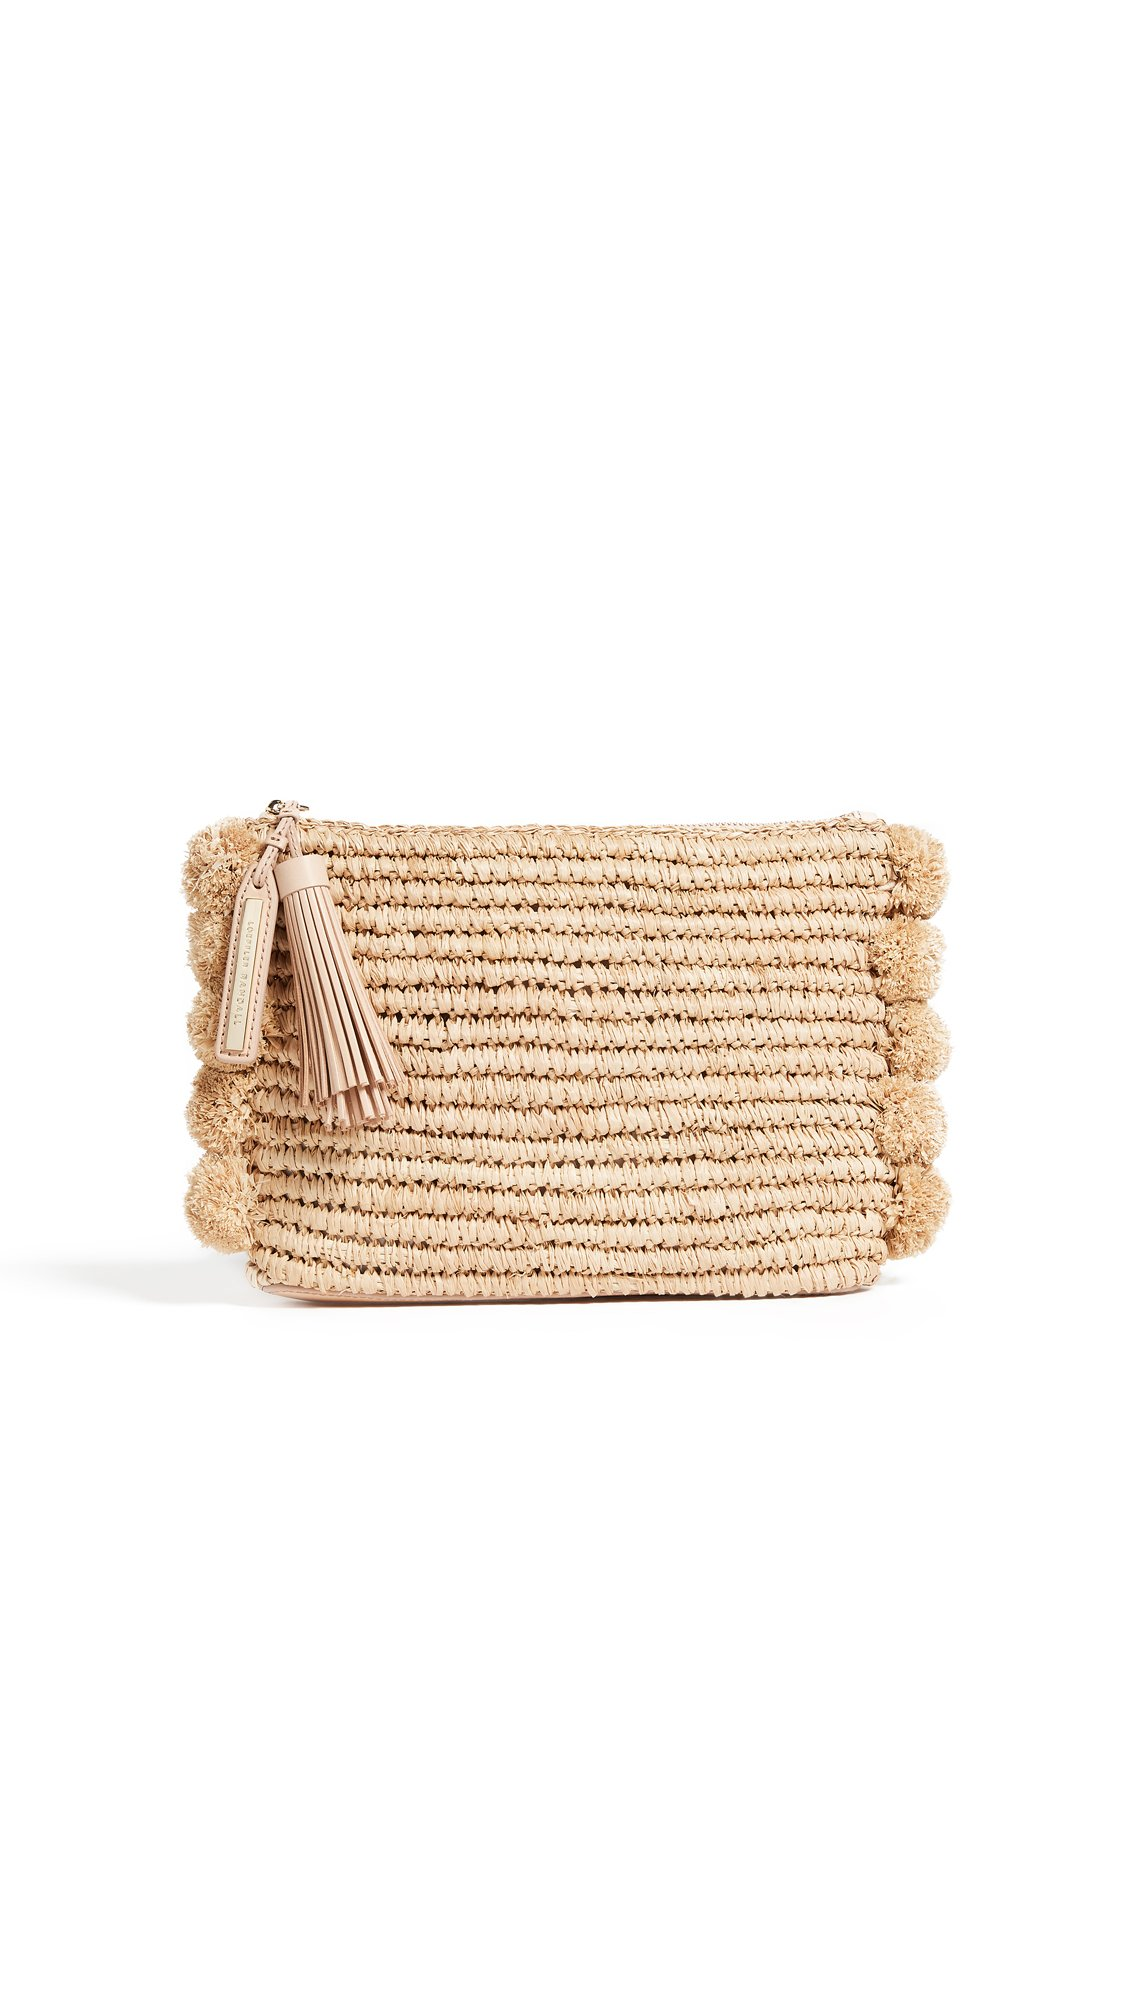 Loeffler Randall Women's Tassel Pouch with Pom Poms, Natural, One Size